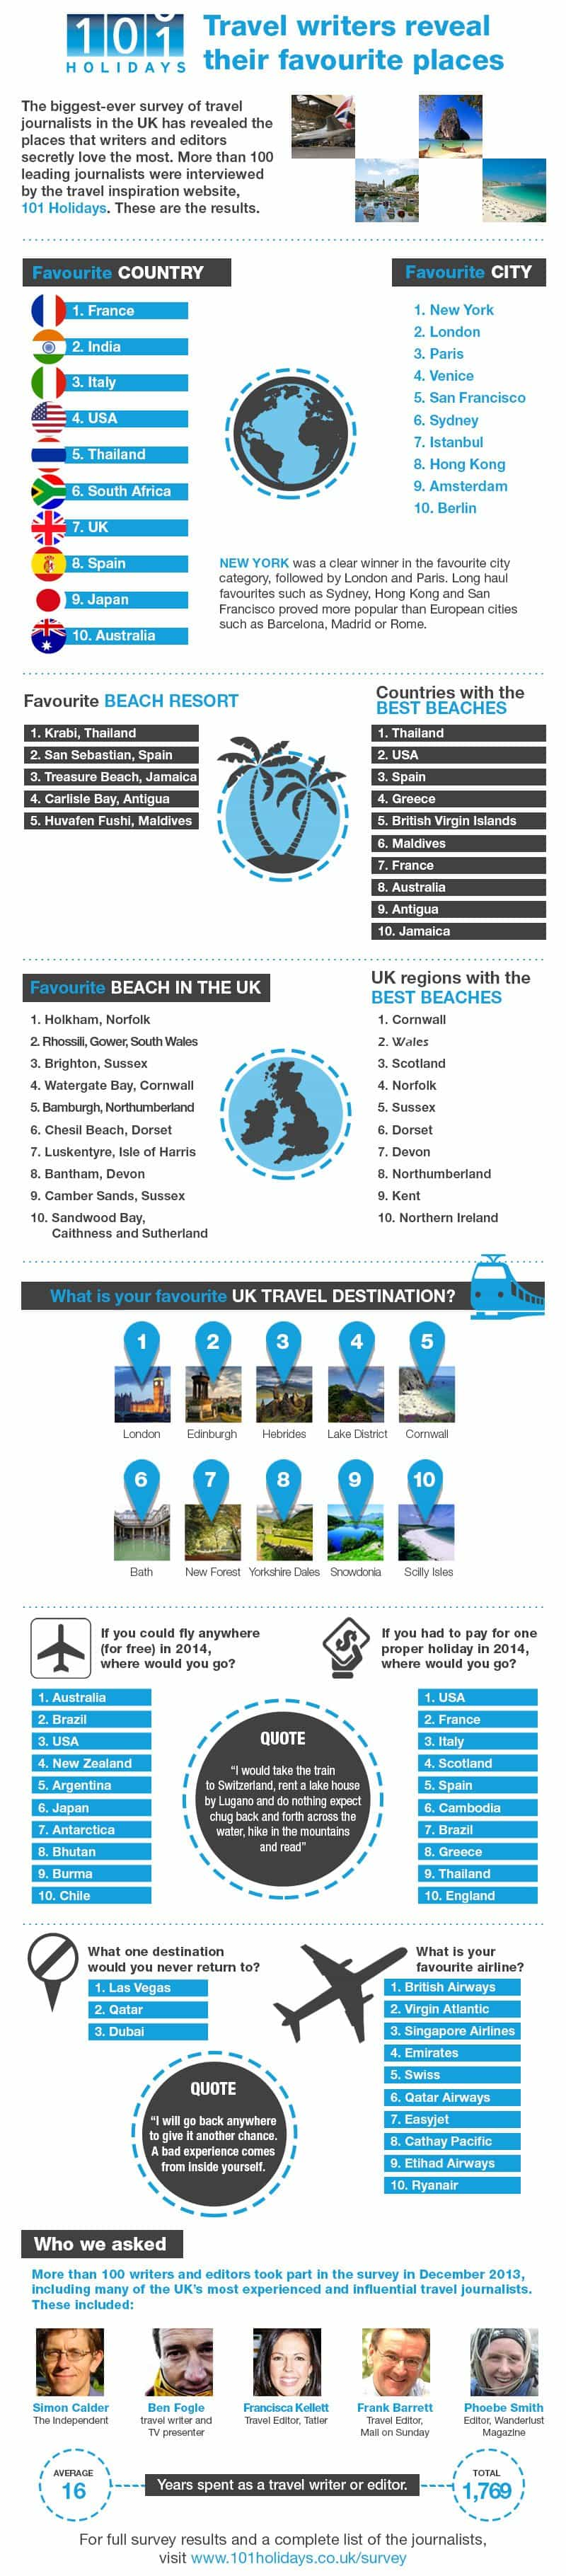 Travel writers favourite places